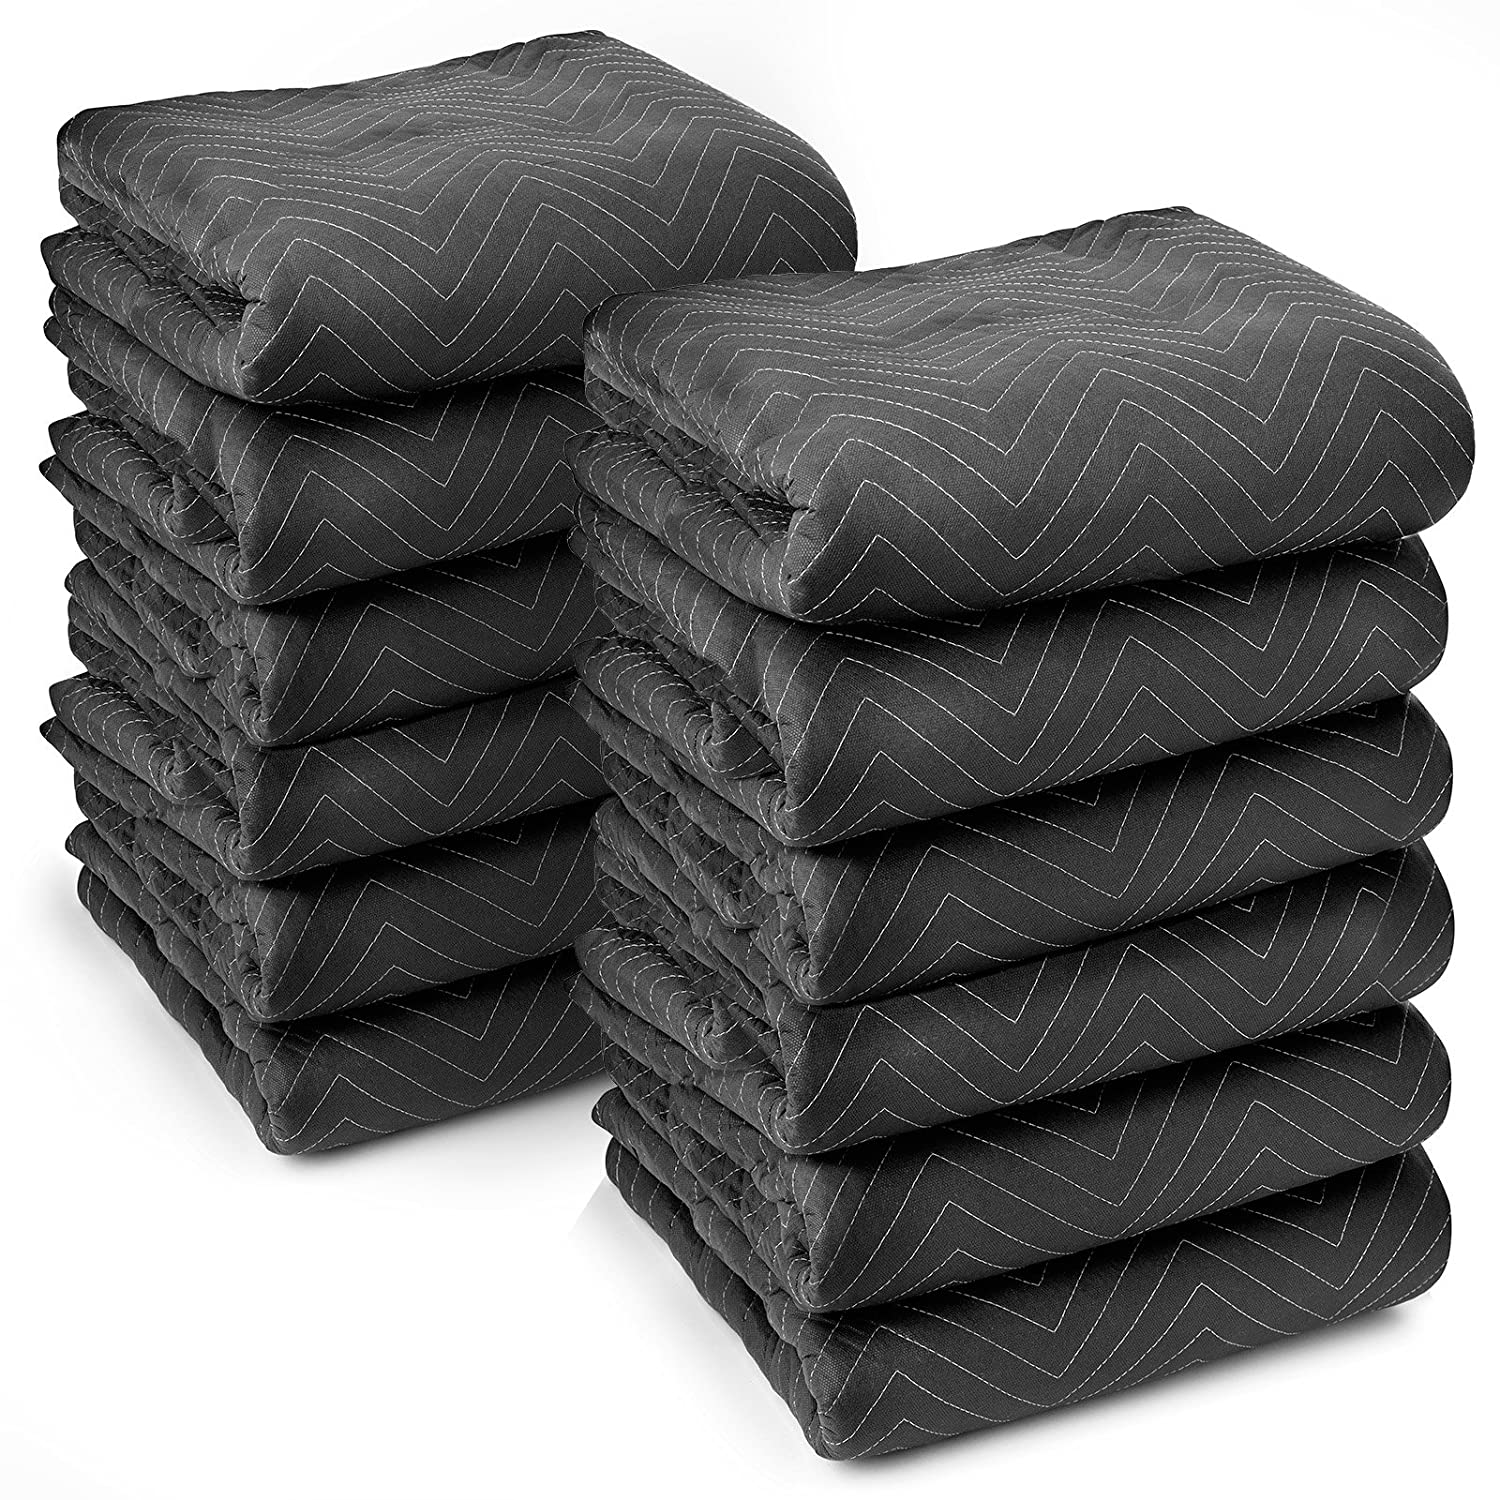 "Sure-Max 12 Heavy-Duty Moving & Packing Blankets - Ultra Thick Pro - 80"" x 72"" (65 lb/dz Weight) - Professional Quilted Shipping Furniture Pads Black"